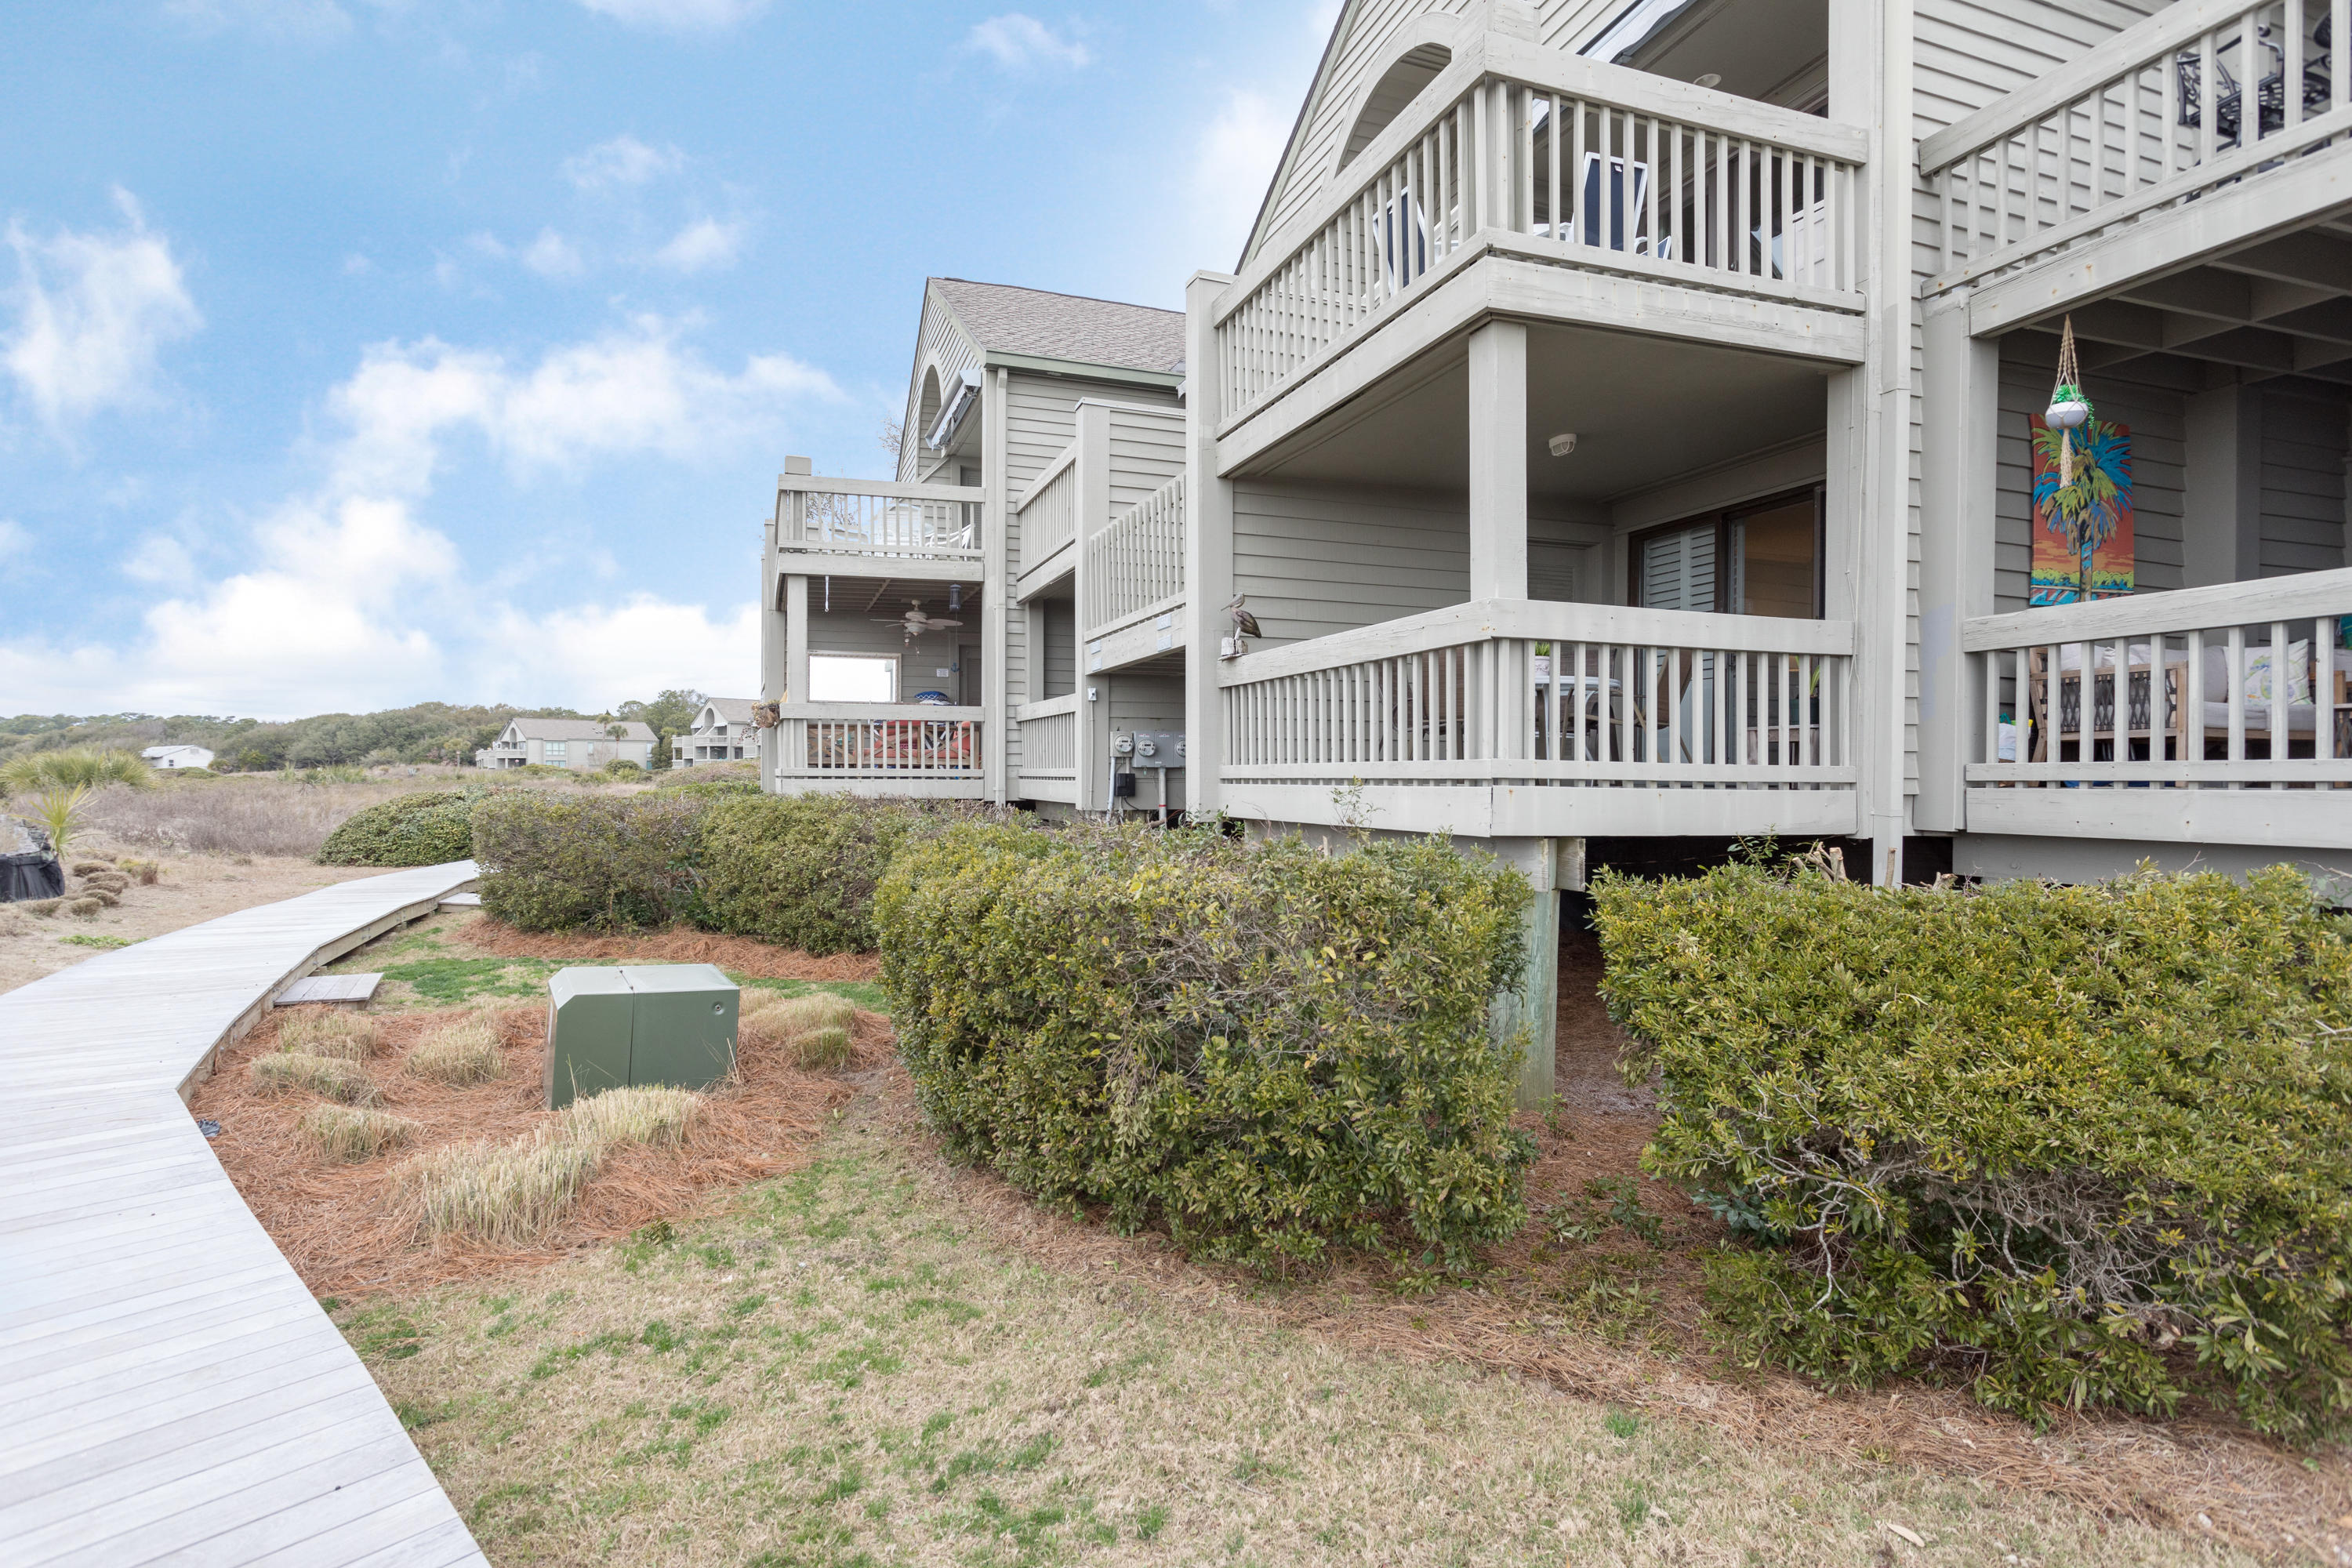 Seabrook Island Homes For Sale - 1329 Pelican Watch Villas, Seabrook Island, SC - 23